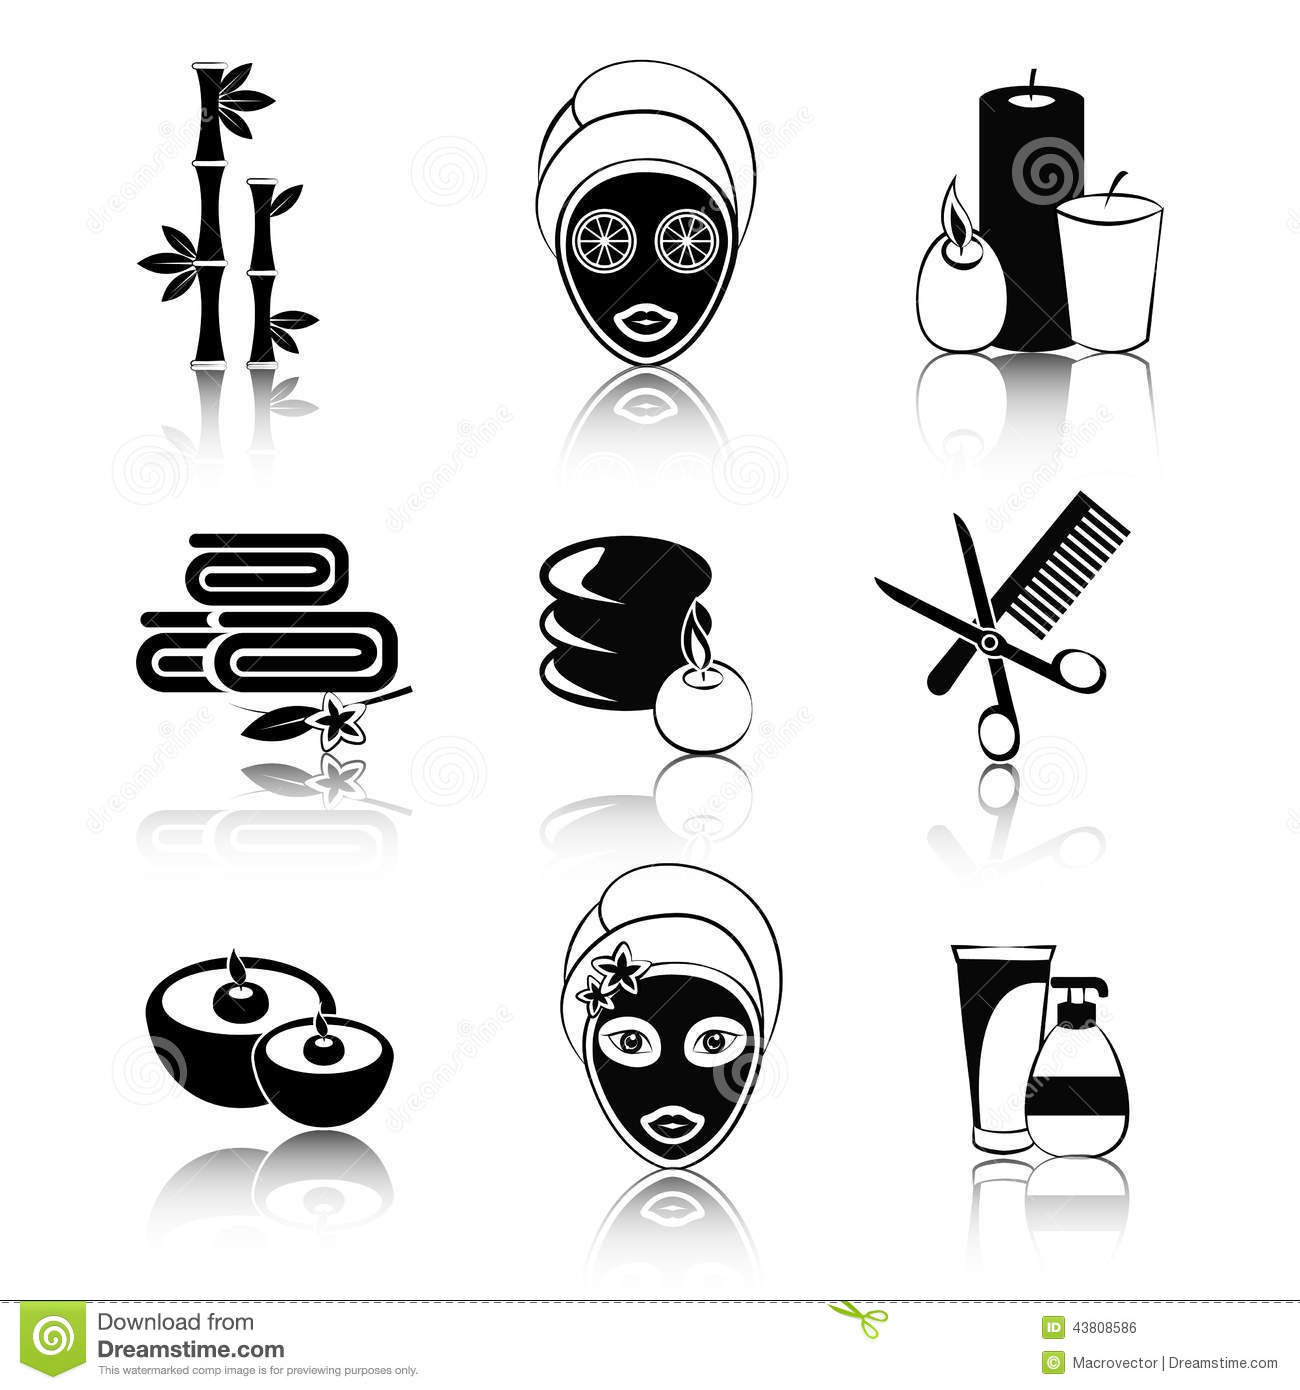 black and white spa icons set stock vector - illustration of